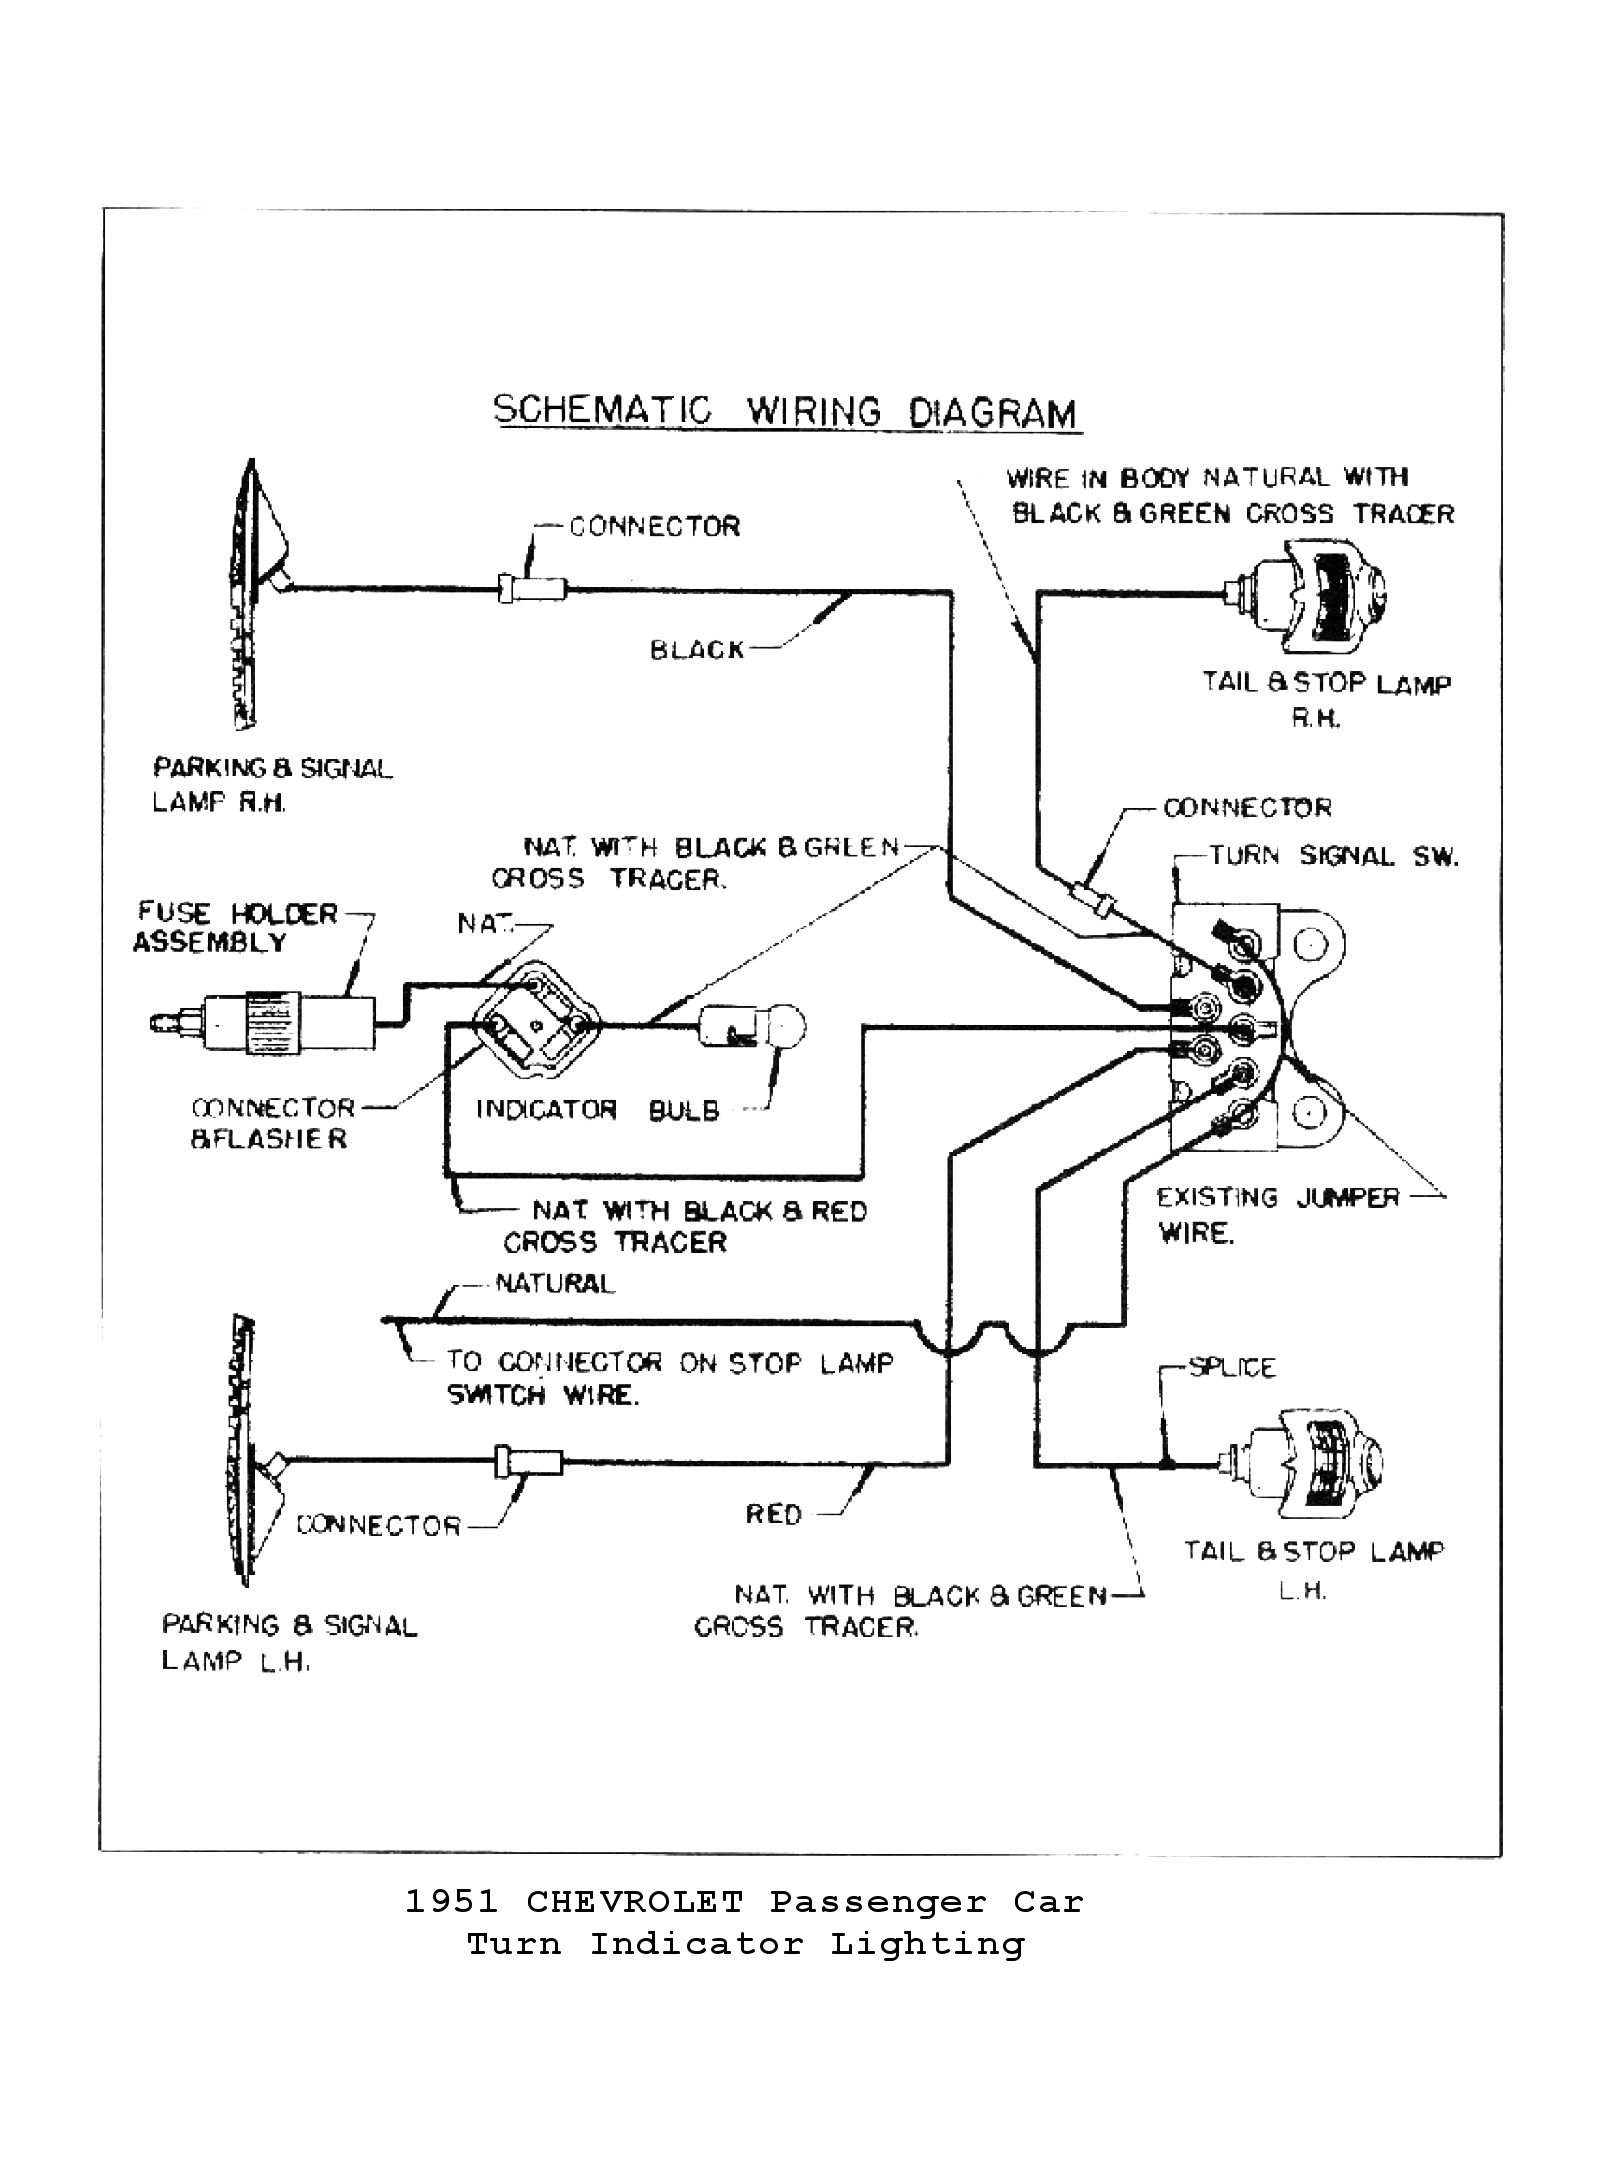 5152turnsignals chevy wiring diagrams 1954 chevy truck wiring diagram at bayanpartner.co